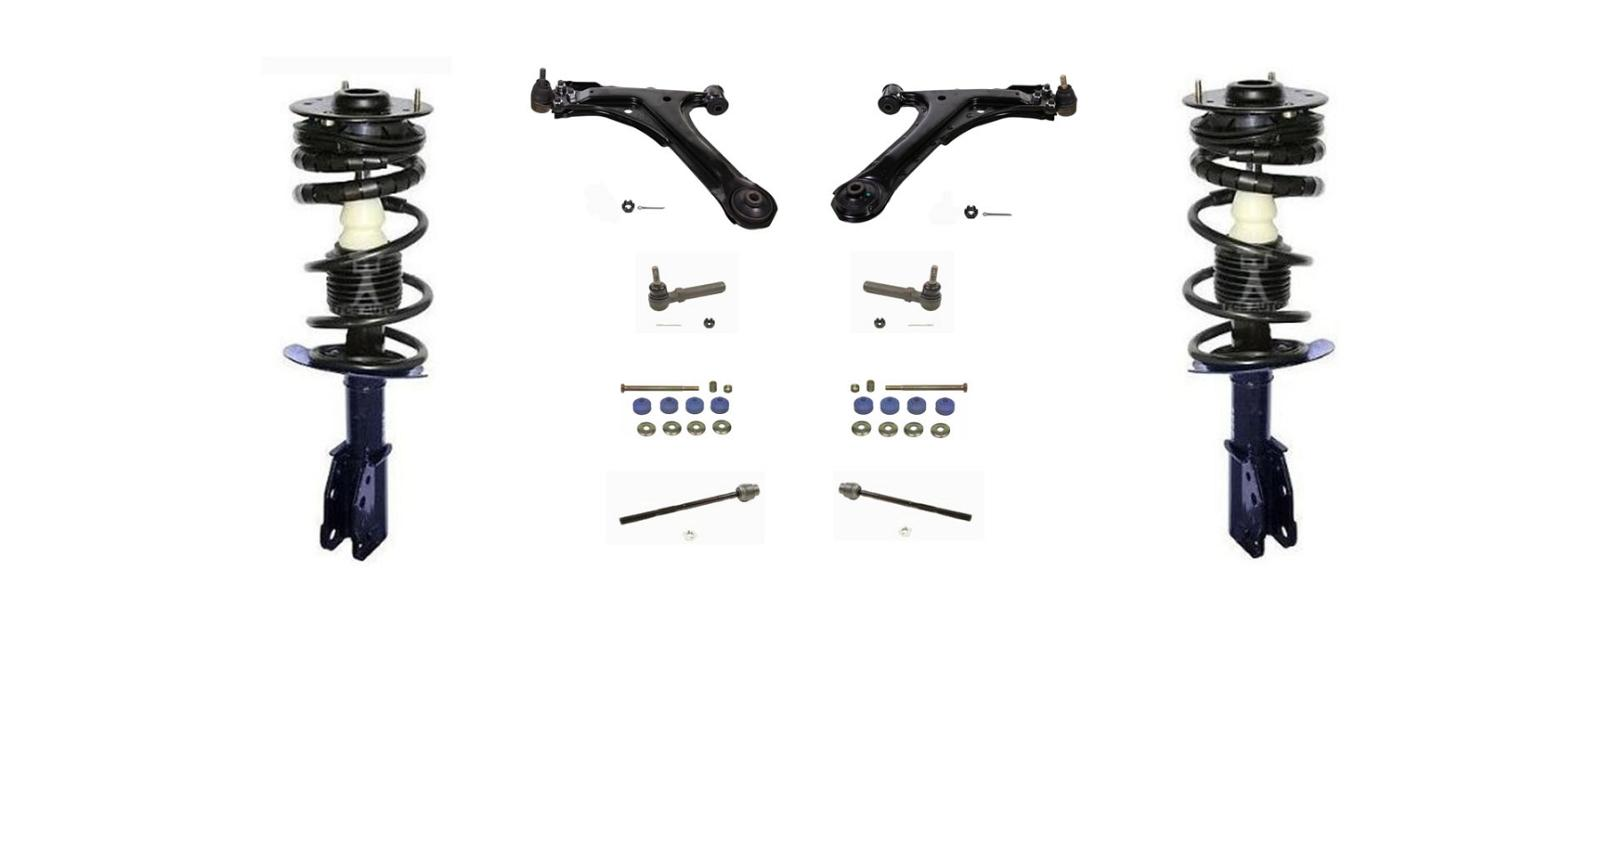 00 05 Cavalier Sunfire Front Quick Spring Strut And Mount